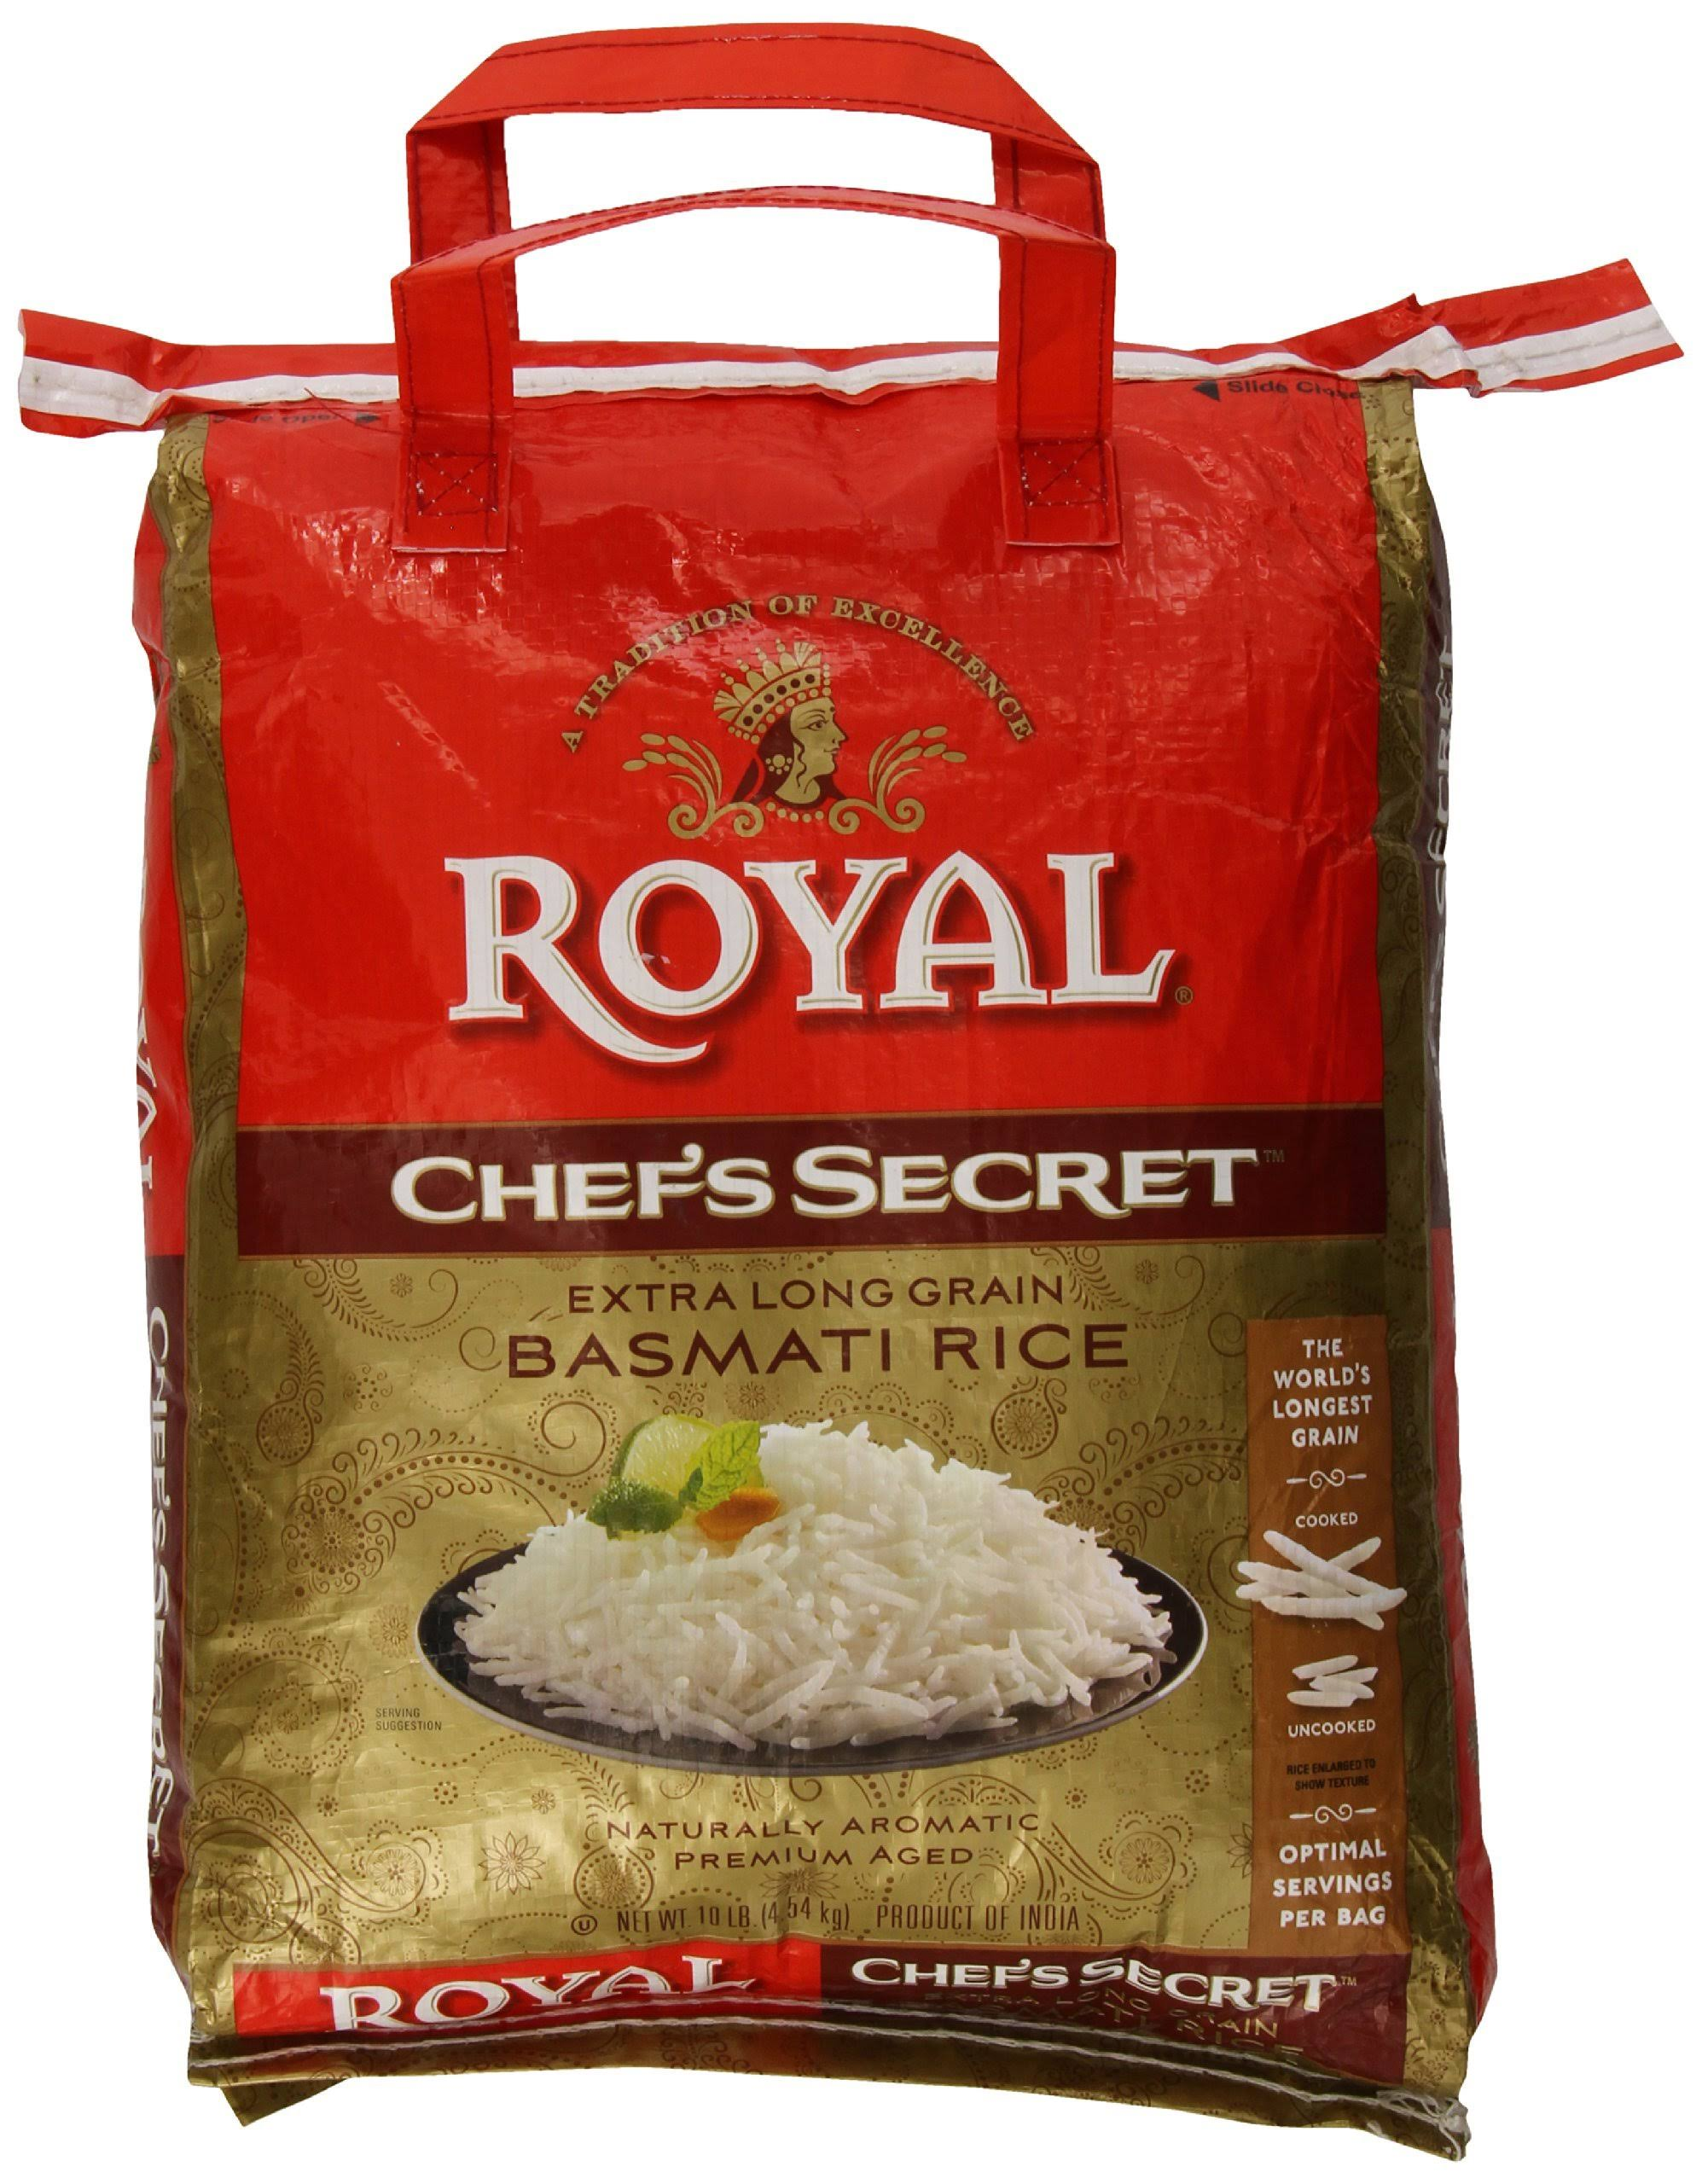 Royal Chef's Secret Extra Long Grain Basmati Rice - 10lbs